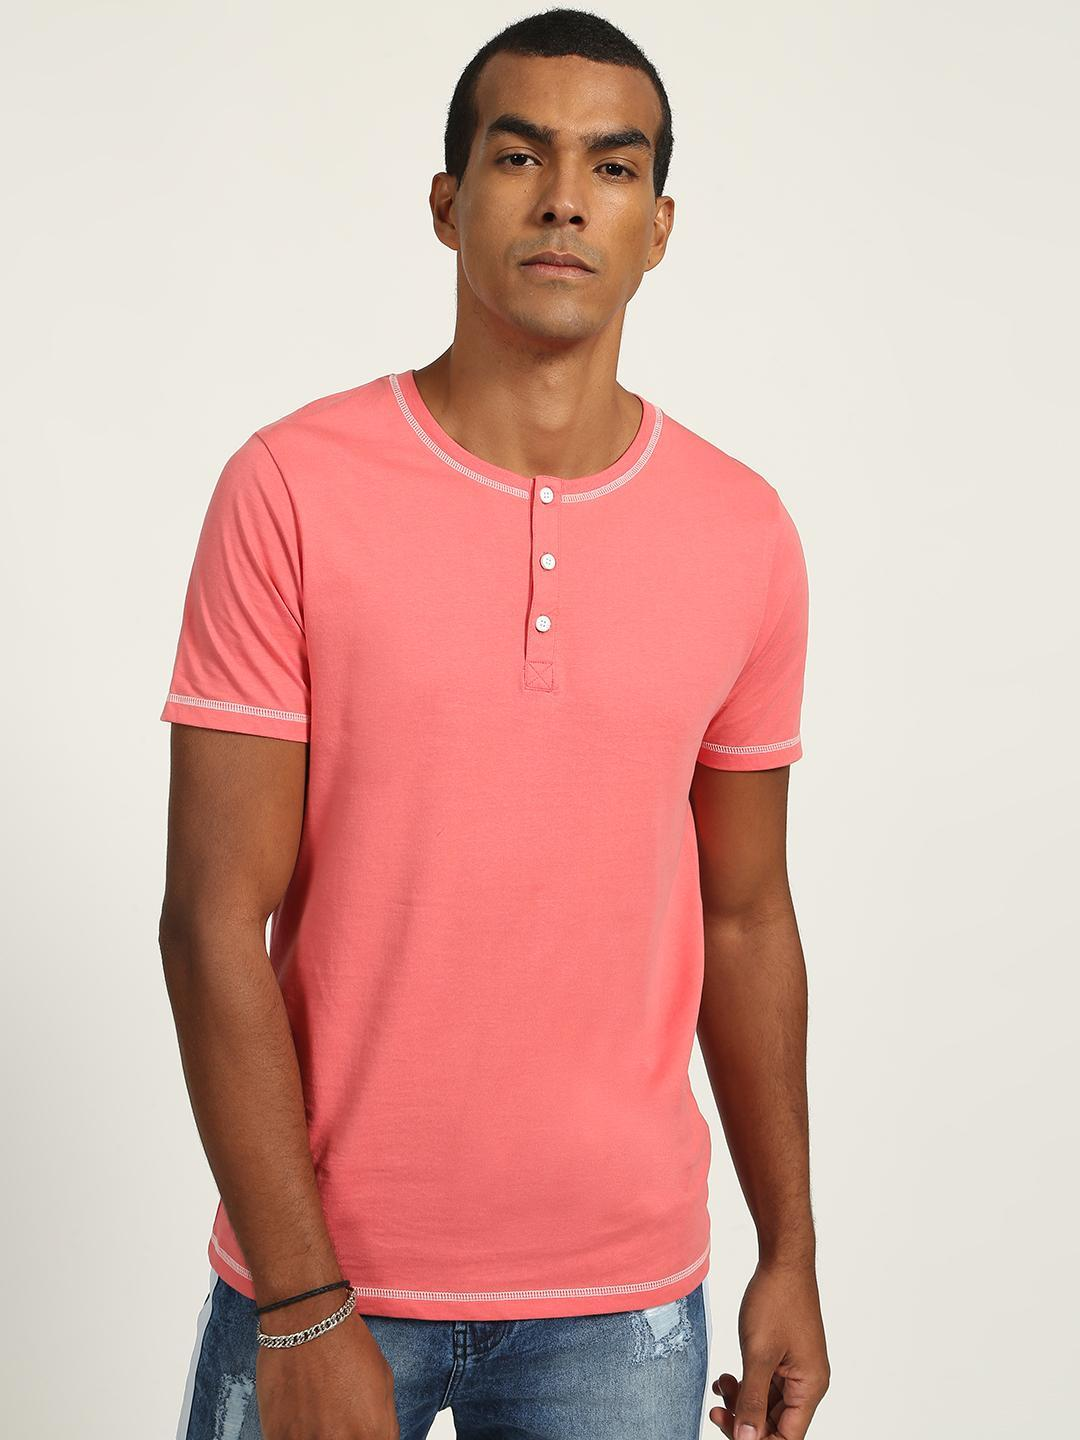 Blue Saint Pink Basic Causal T-shirt 1